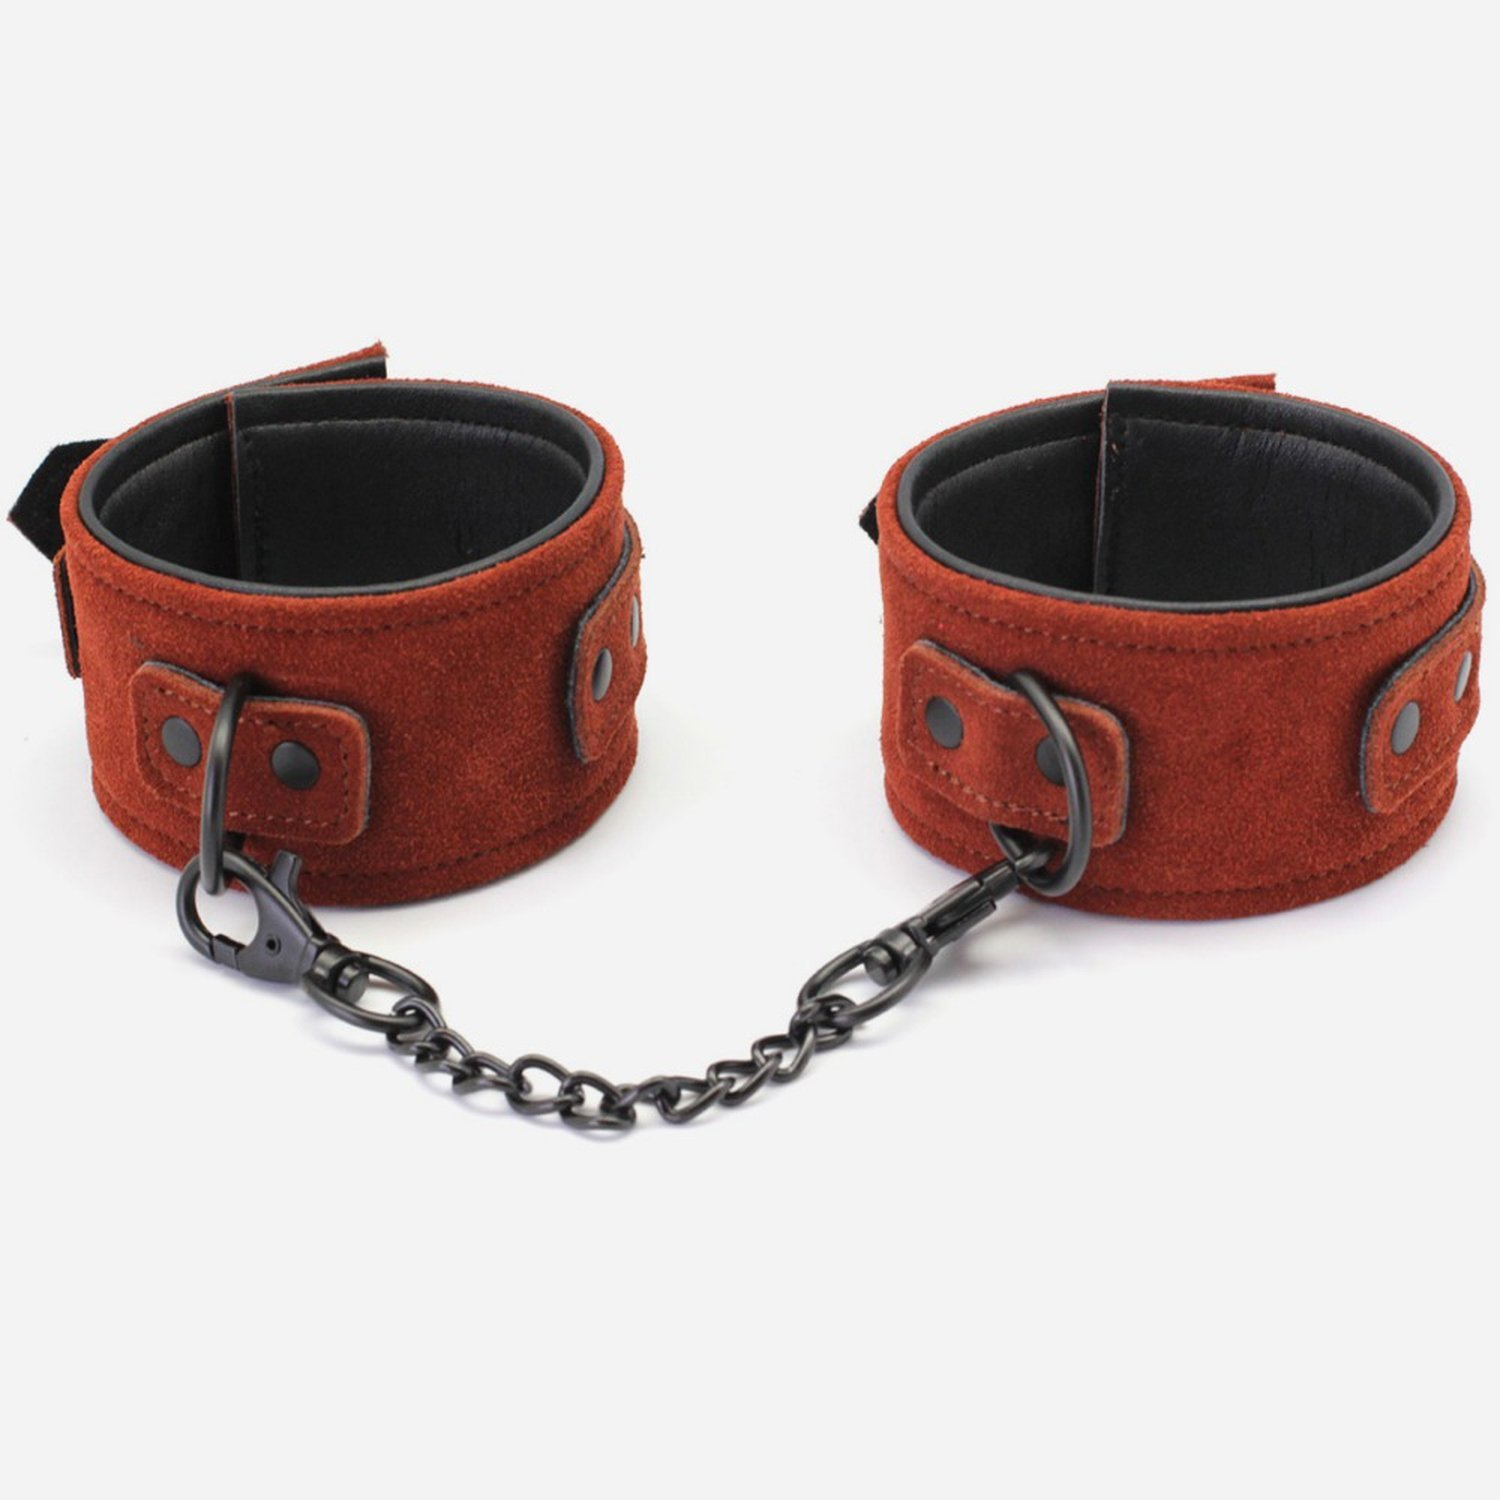 Sexvv Game BDSM SM New Arrival Luxury Top Leather Ankle Cuffs Brown Suede Feet Sexvv Restraint Products Adult Toys,sm Games, XNNYA Shirt